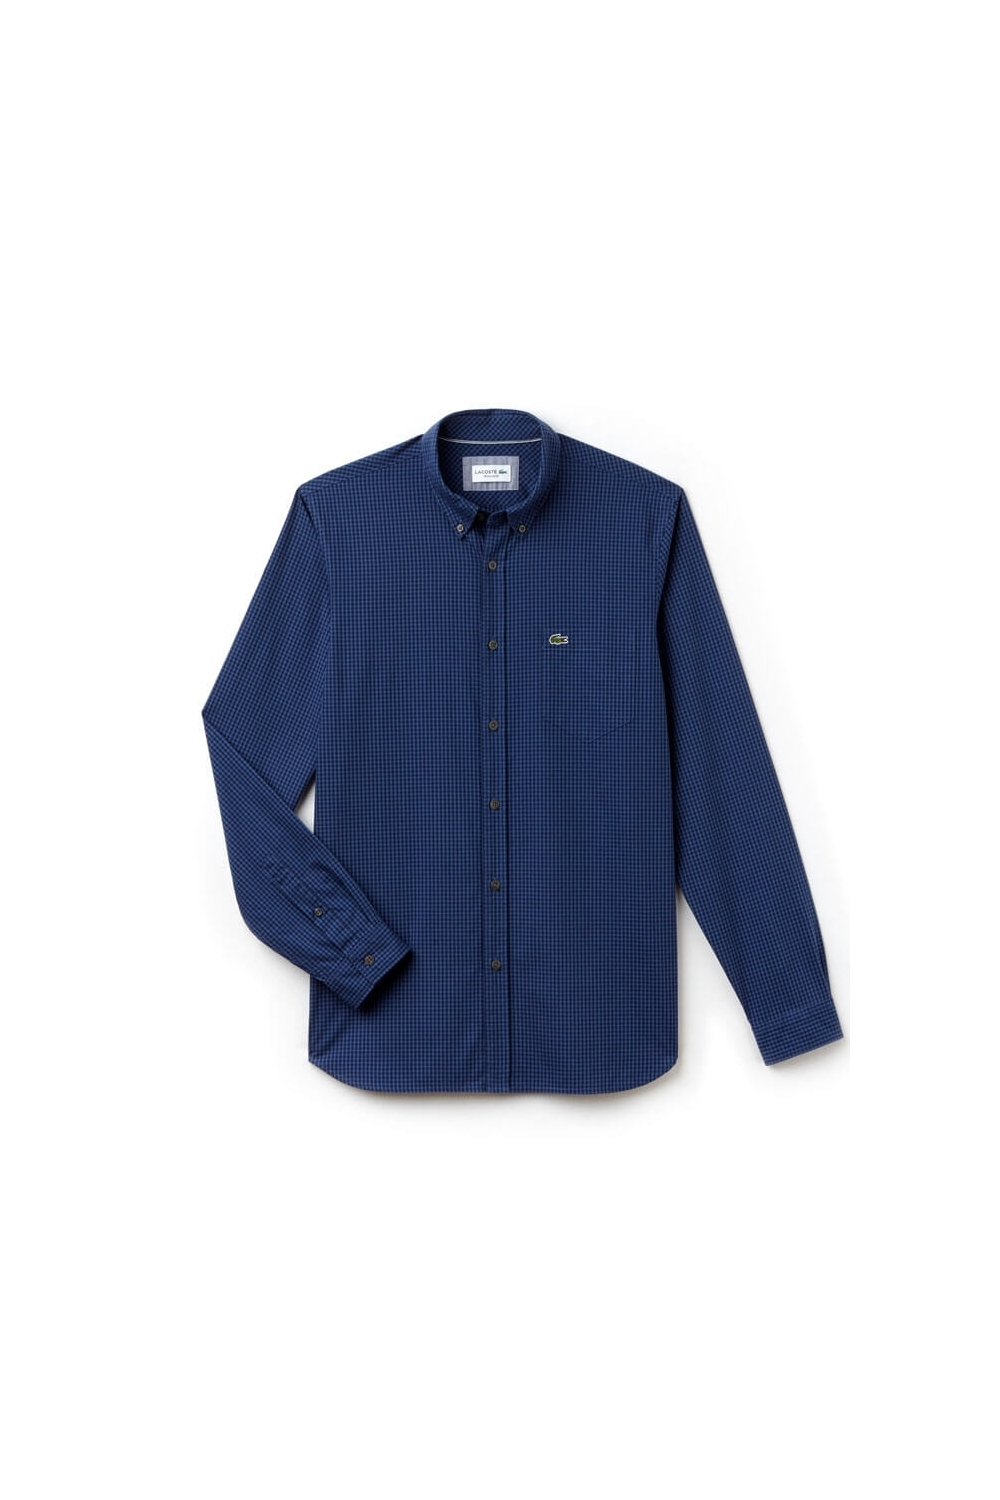 Lacoste Long Sleeve Regular Fit Shirt Blue Small Multi Check 69a236ba2491